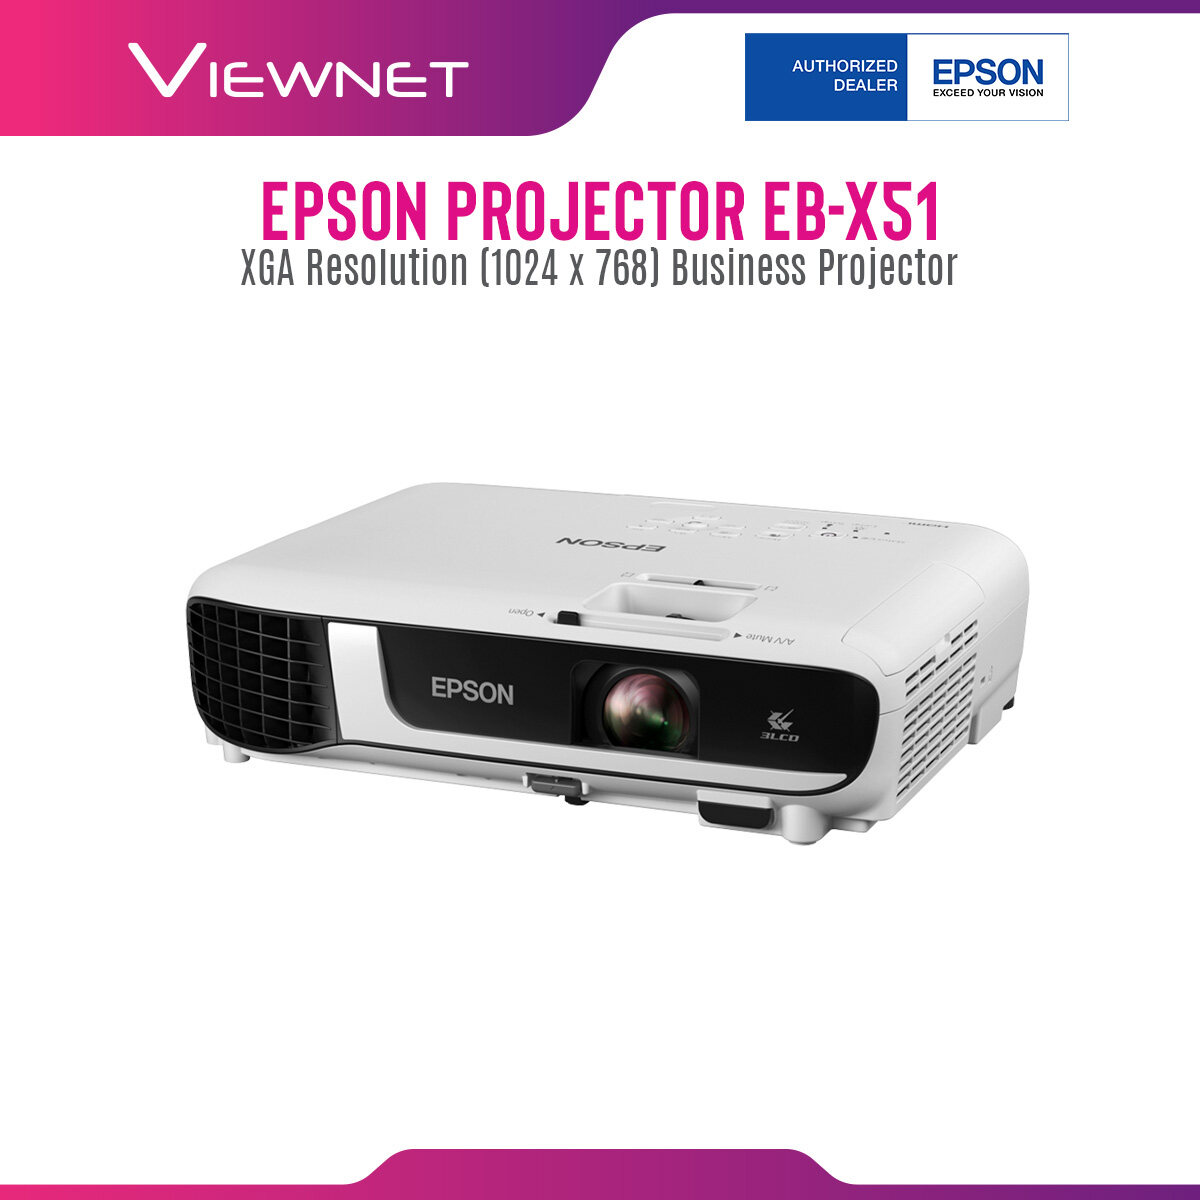 Epson Projector EB-X51 with XGA Resolution (1024 x 768), 3800 Lumens, 12000 Hours Lamp Life in Eco Mode